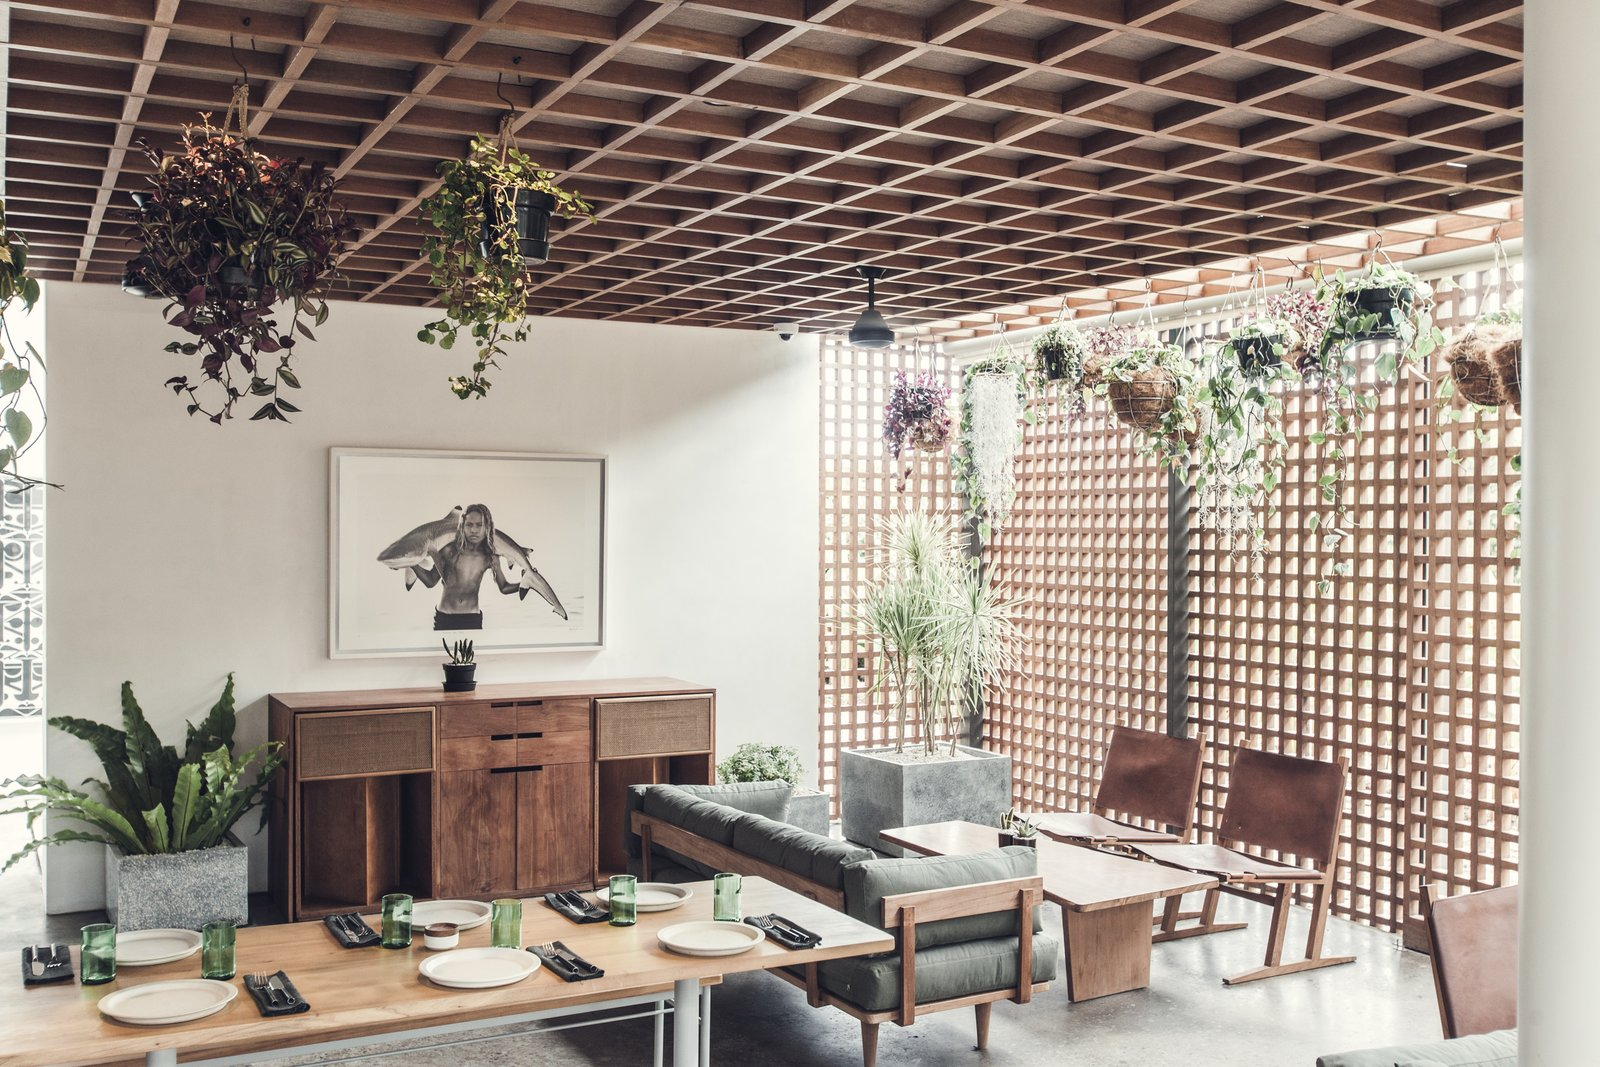 Living Room, Console Tables, Ceiling Lighting, Table, Chair, Sofa, Coffee Tables, and Concrete Floor  Best Photos from Go Beyond the Basics in an Australian Fashion Designer's Surf-Inspired Bali Hotel